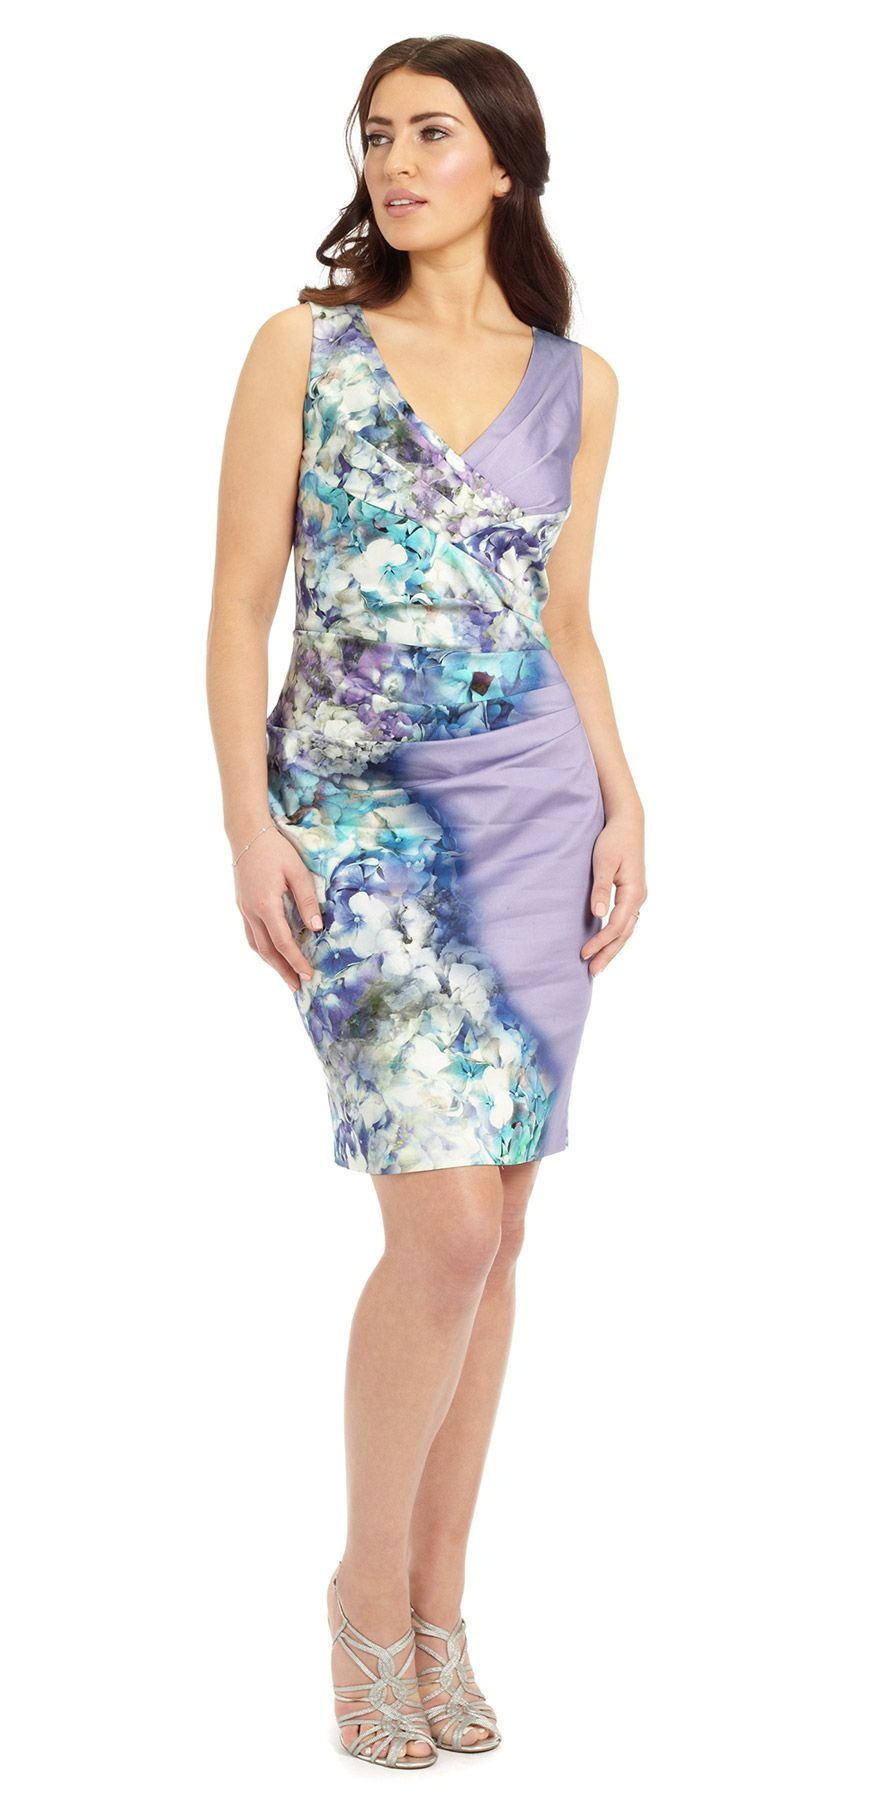 Summer Wedding Outfits Mother of the Bride or Groom Dress